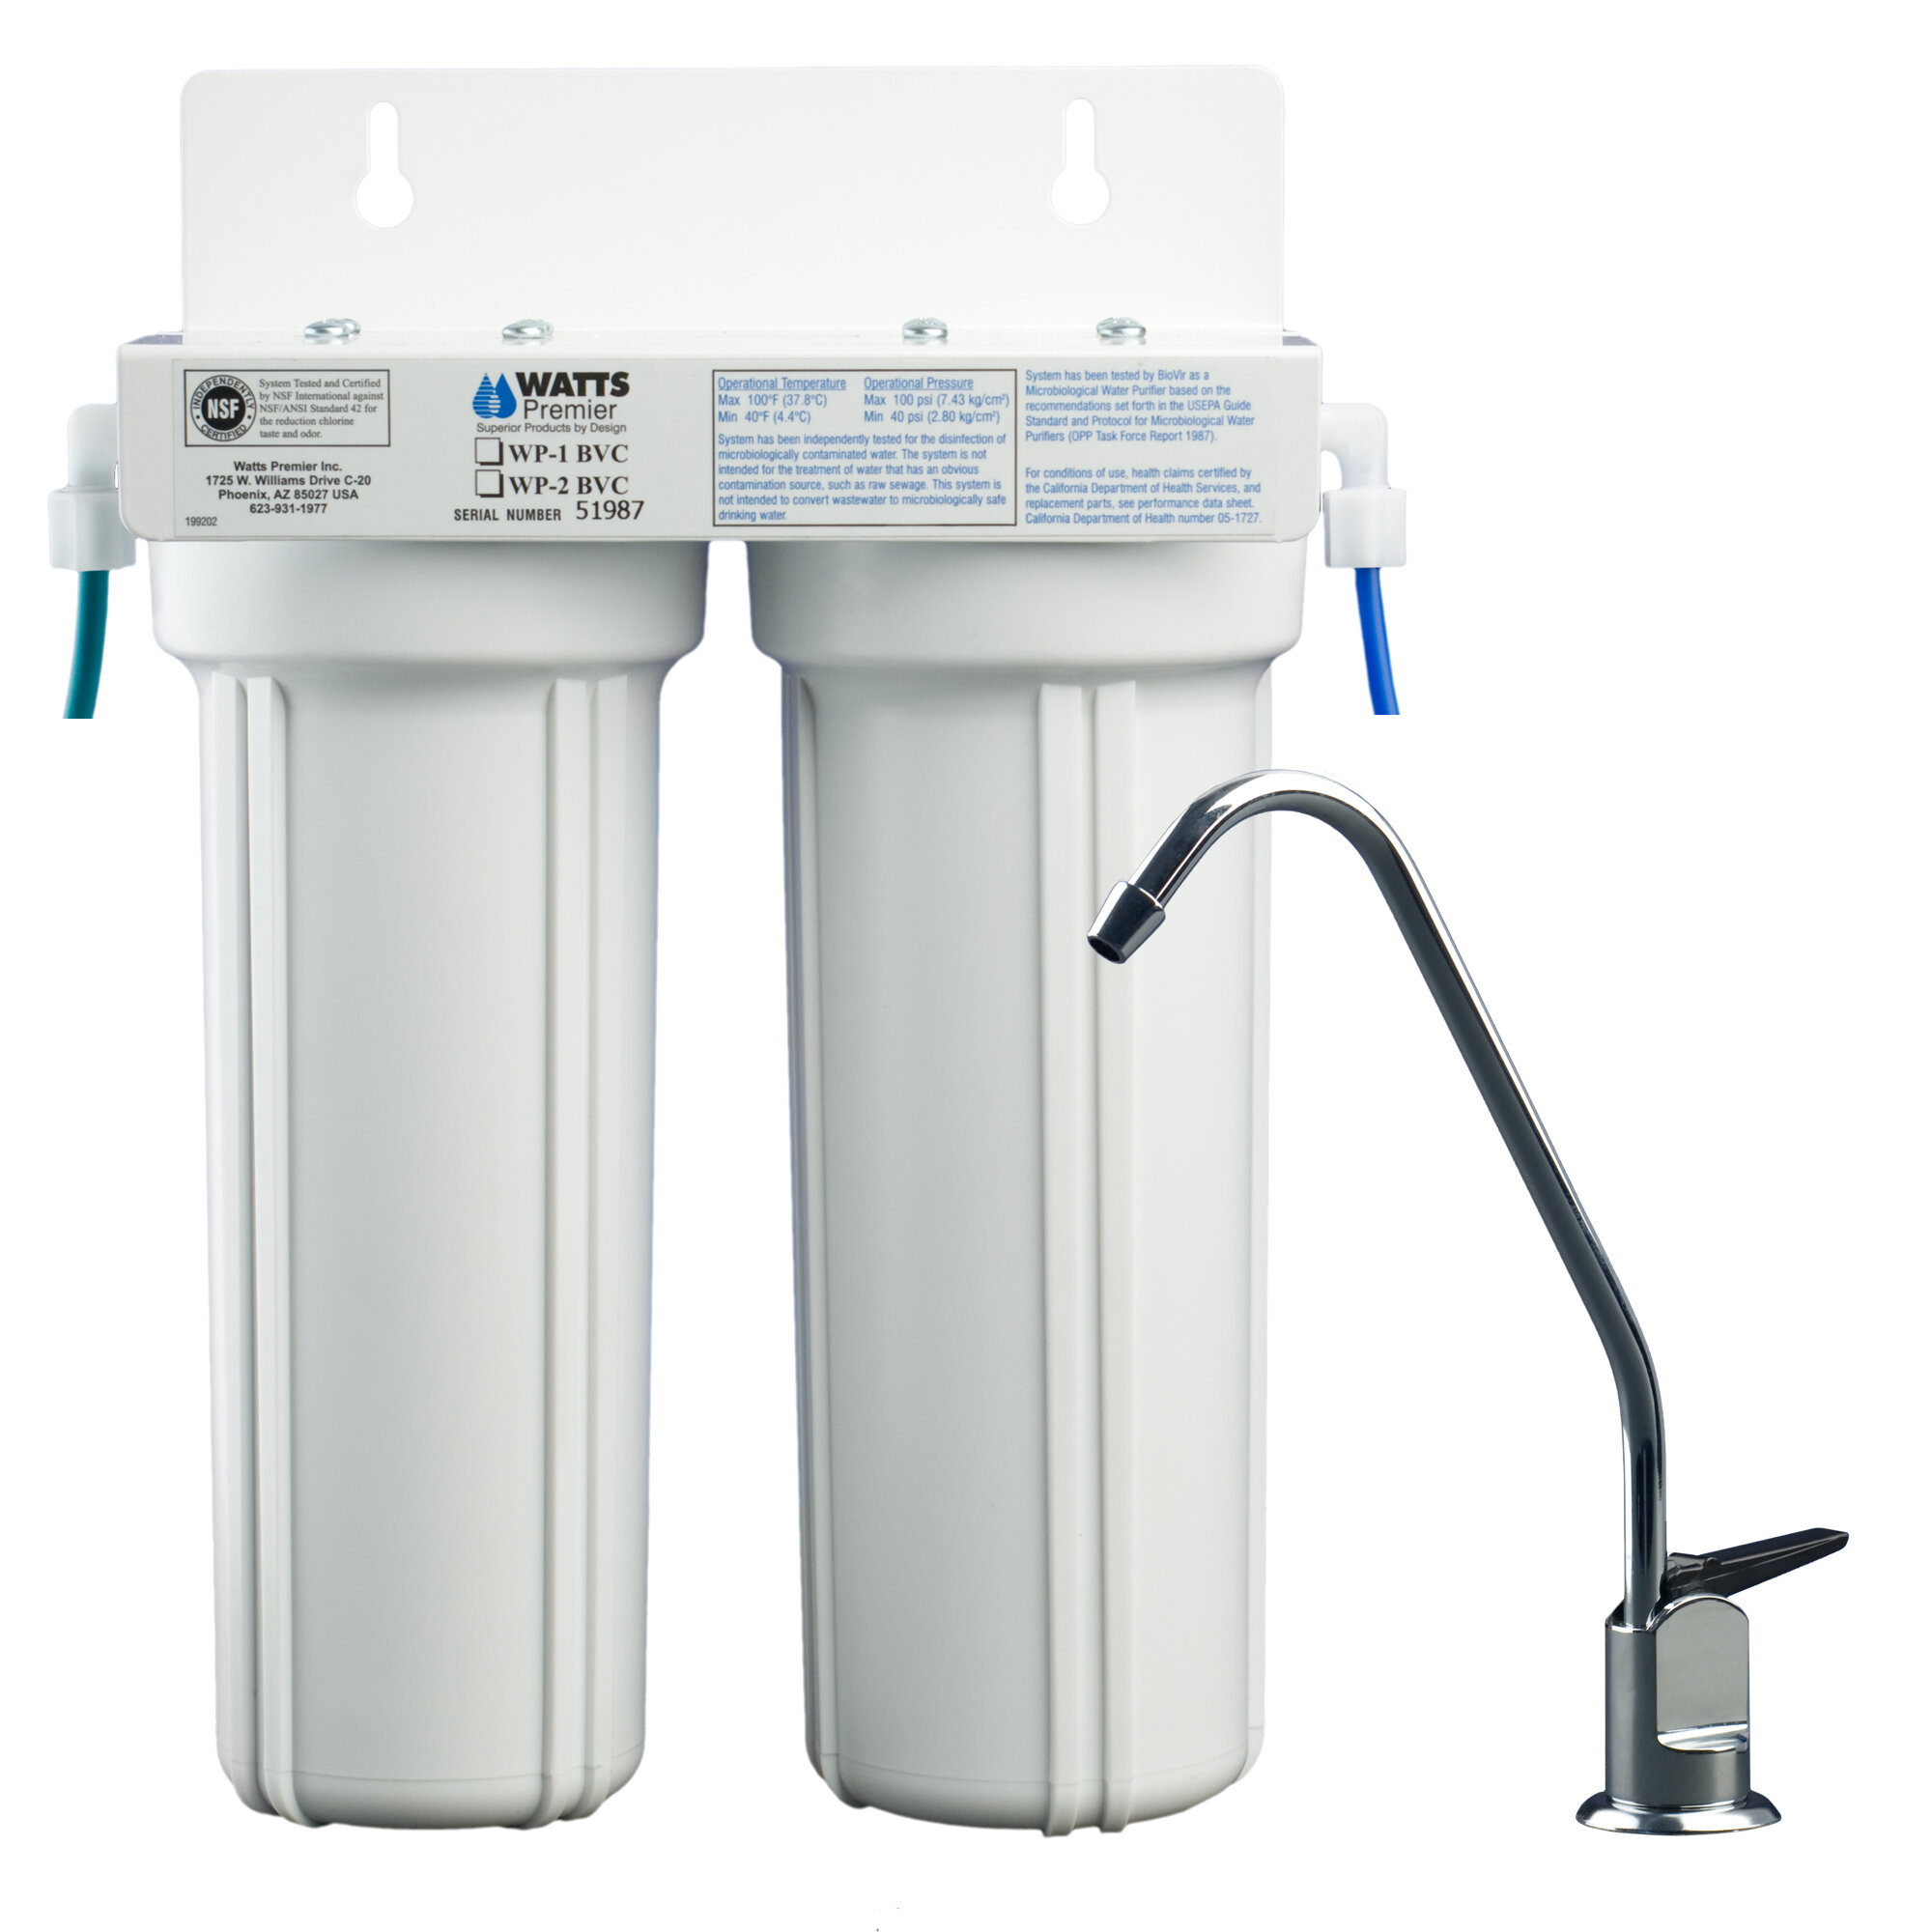 Watts Premier 2-Stage Under-sink Filtration System & Reviews | Wayfair